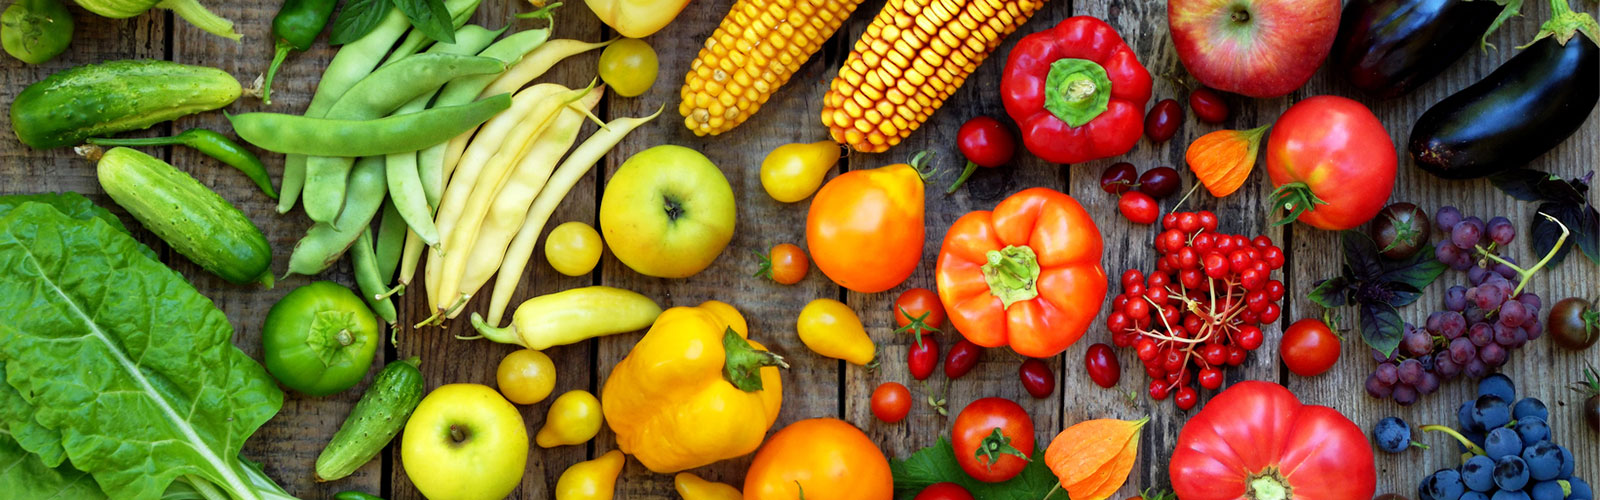 Image: colourful selection of fruit and vegetables